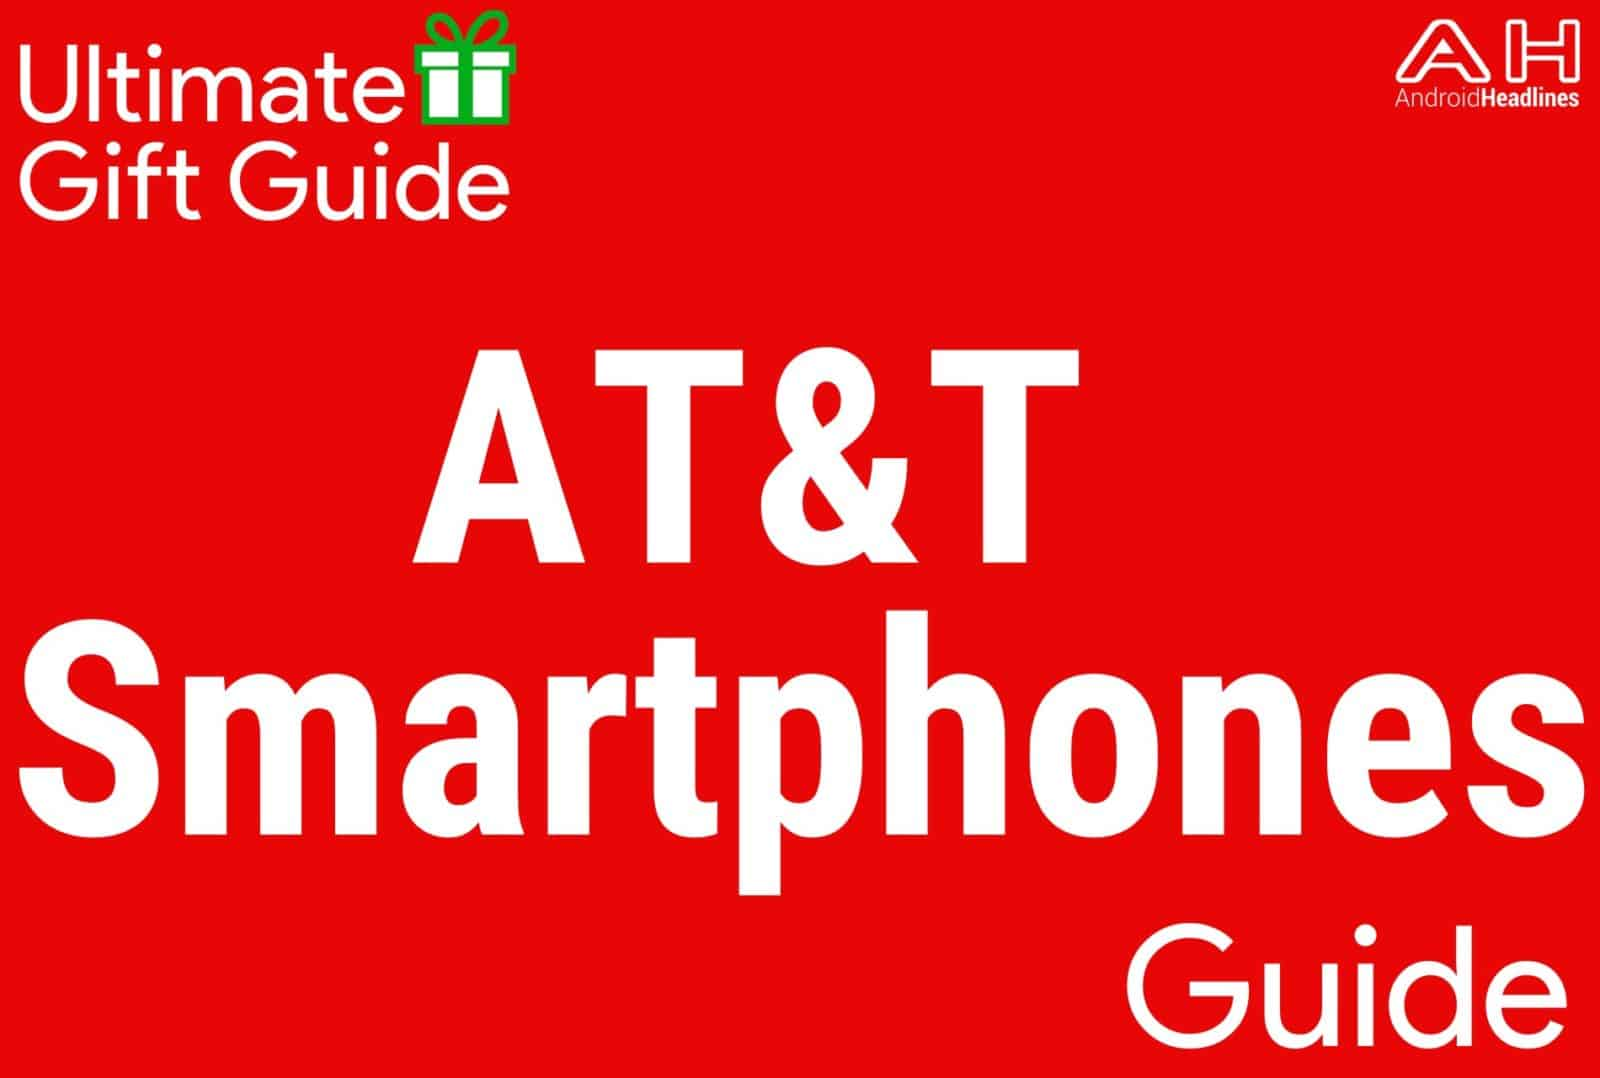 Smartphones - AT&T - Gift Guide 2015